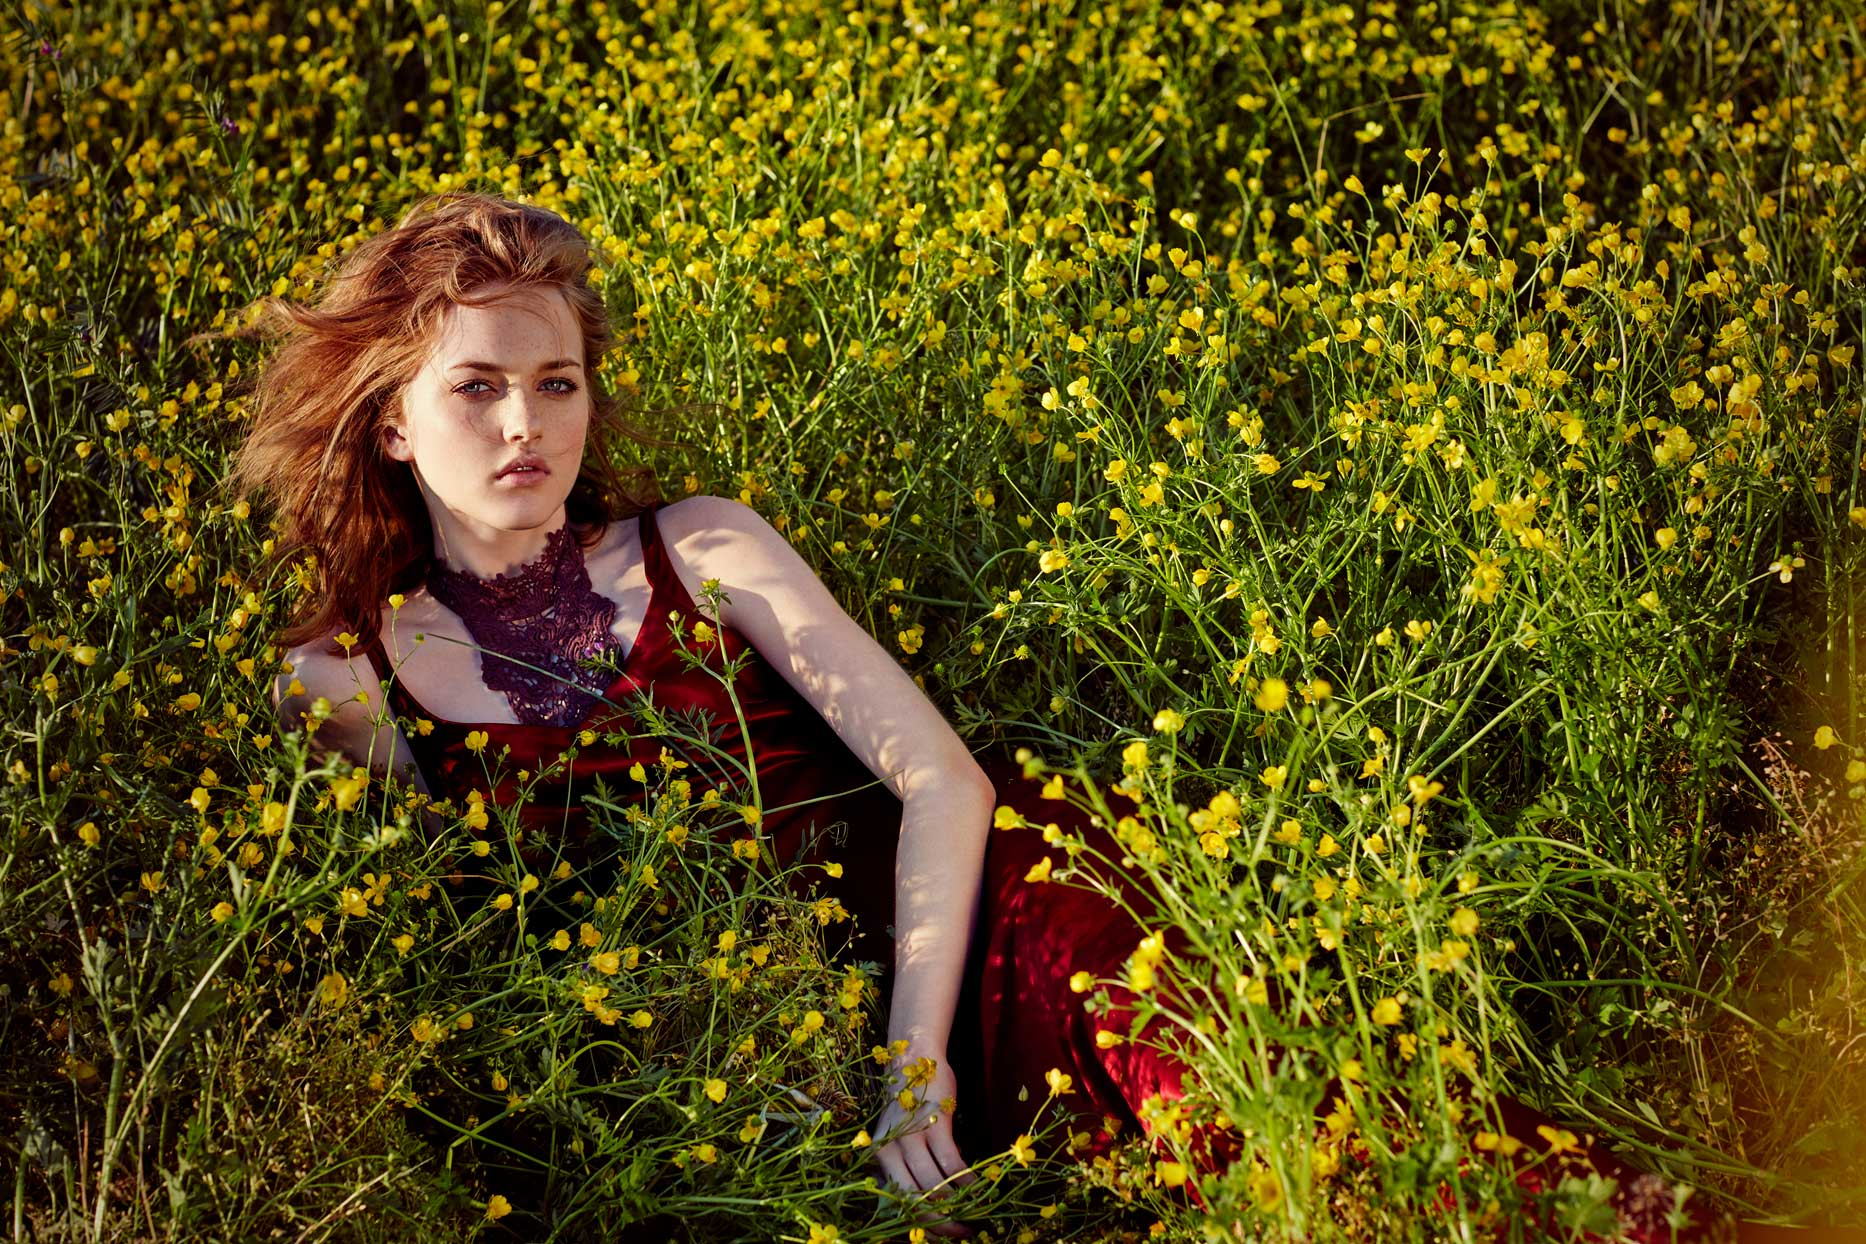 Red haired woman with freckles wearing silk red dress laying in field of yellow flowers - Mark DeLong: Fashion Gallery